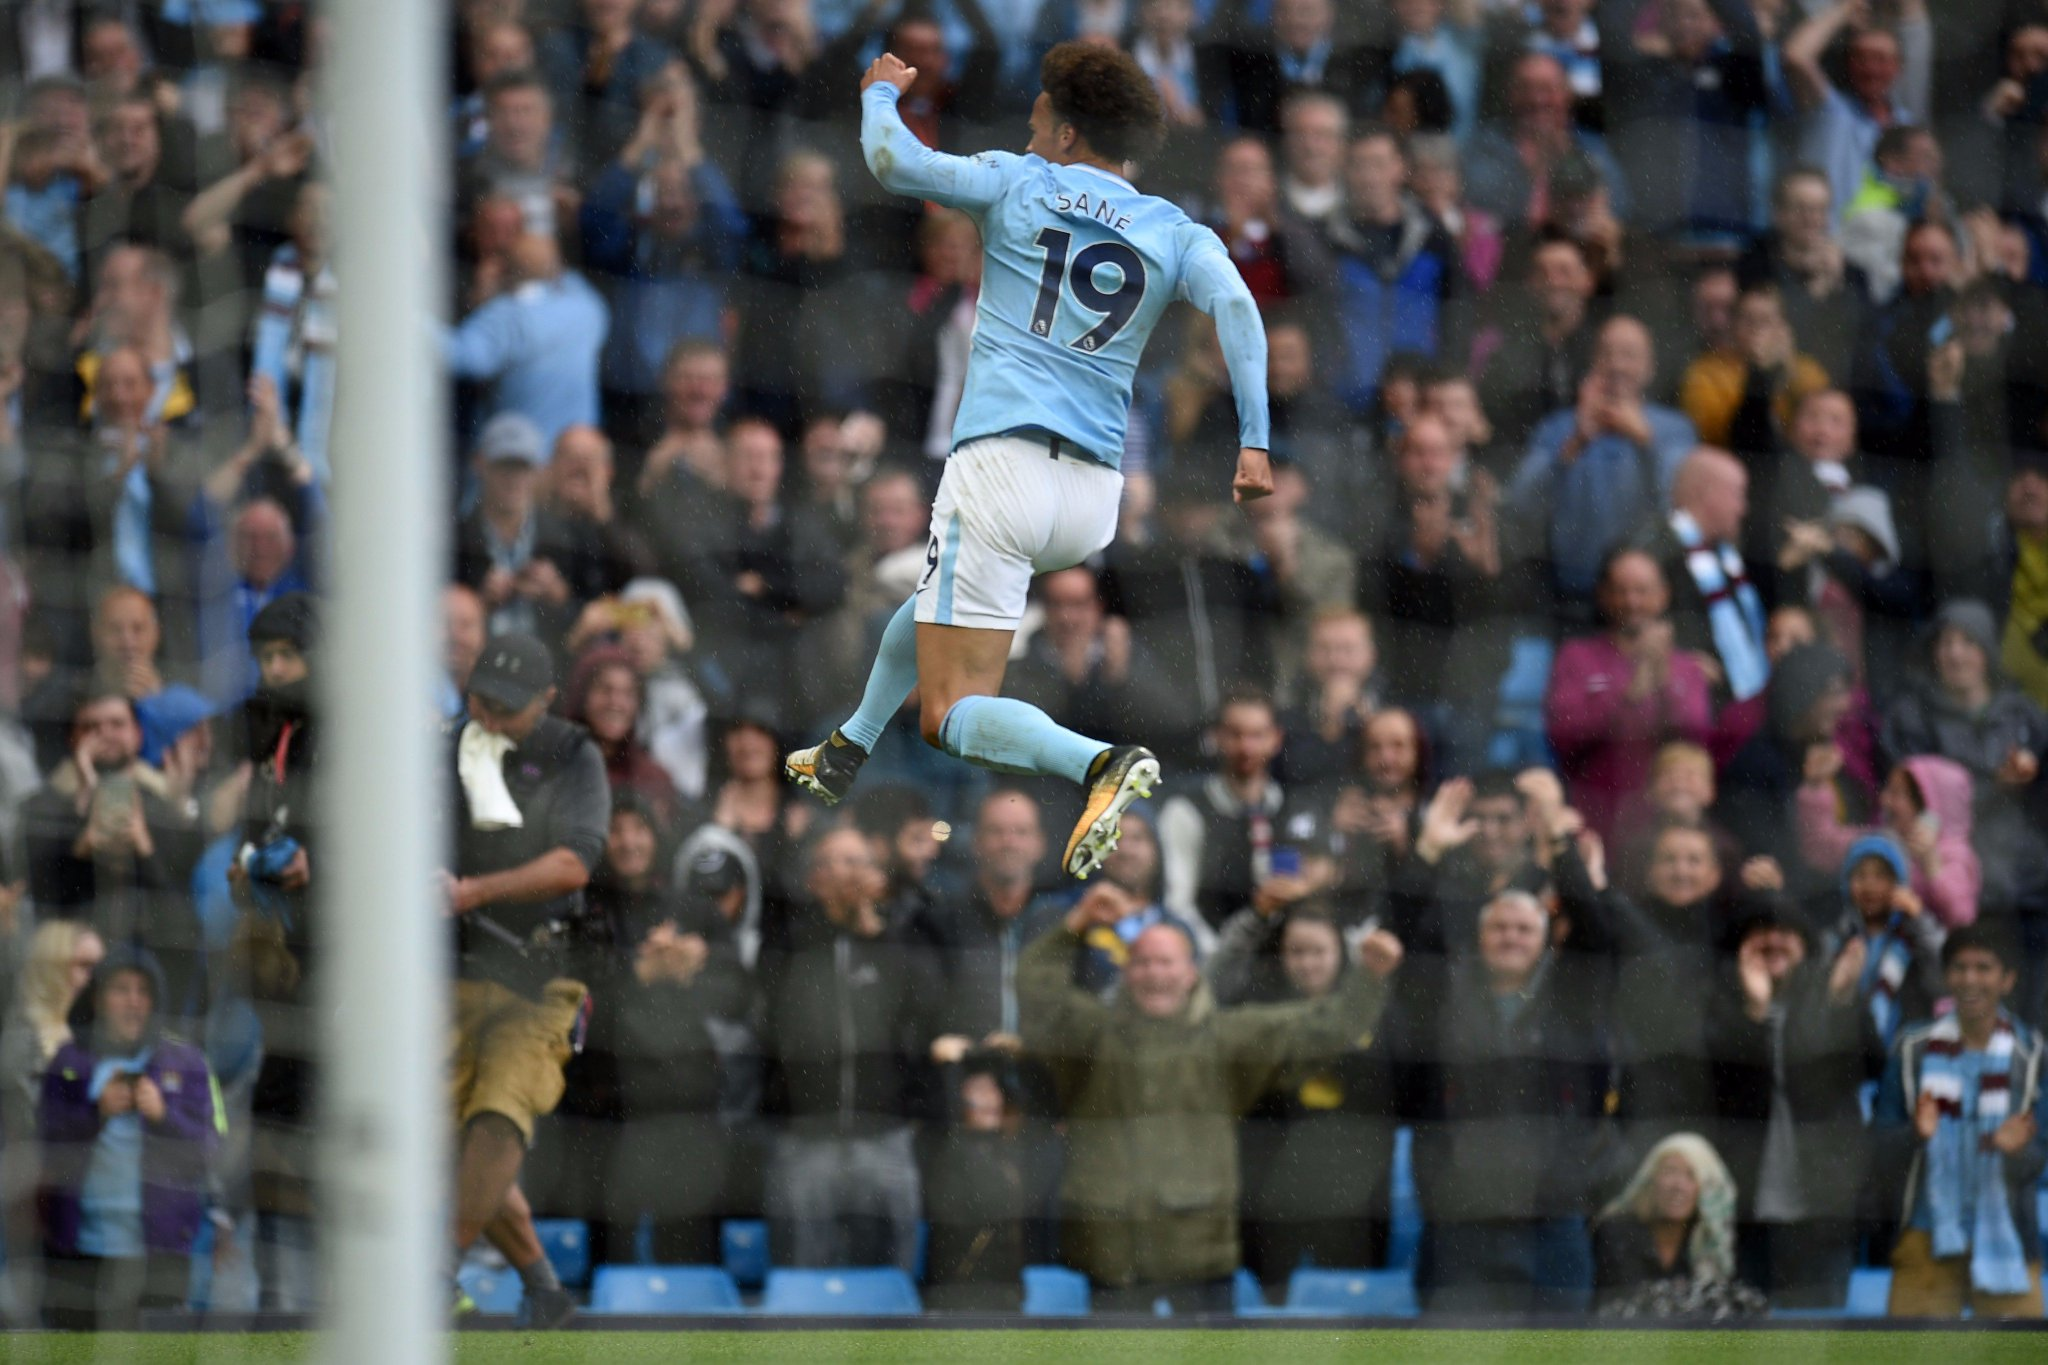 Leroy Sané has scored 4 goals in his last 4 games for Manchester City. ��   Biggest talent at #mancity? ⚽️ https://t.co/5zJejUAYJi